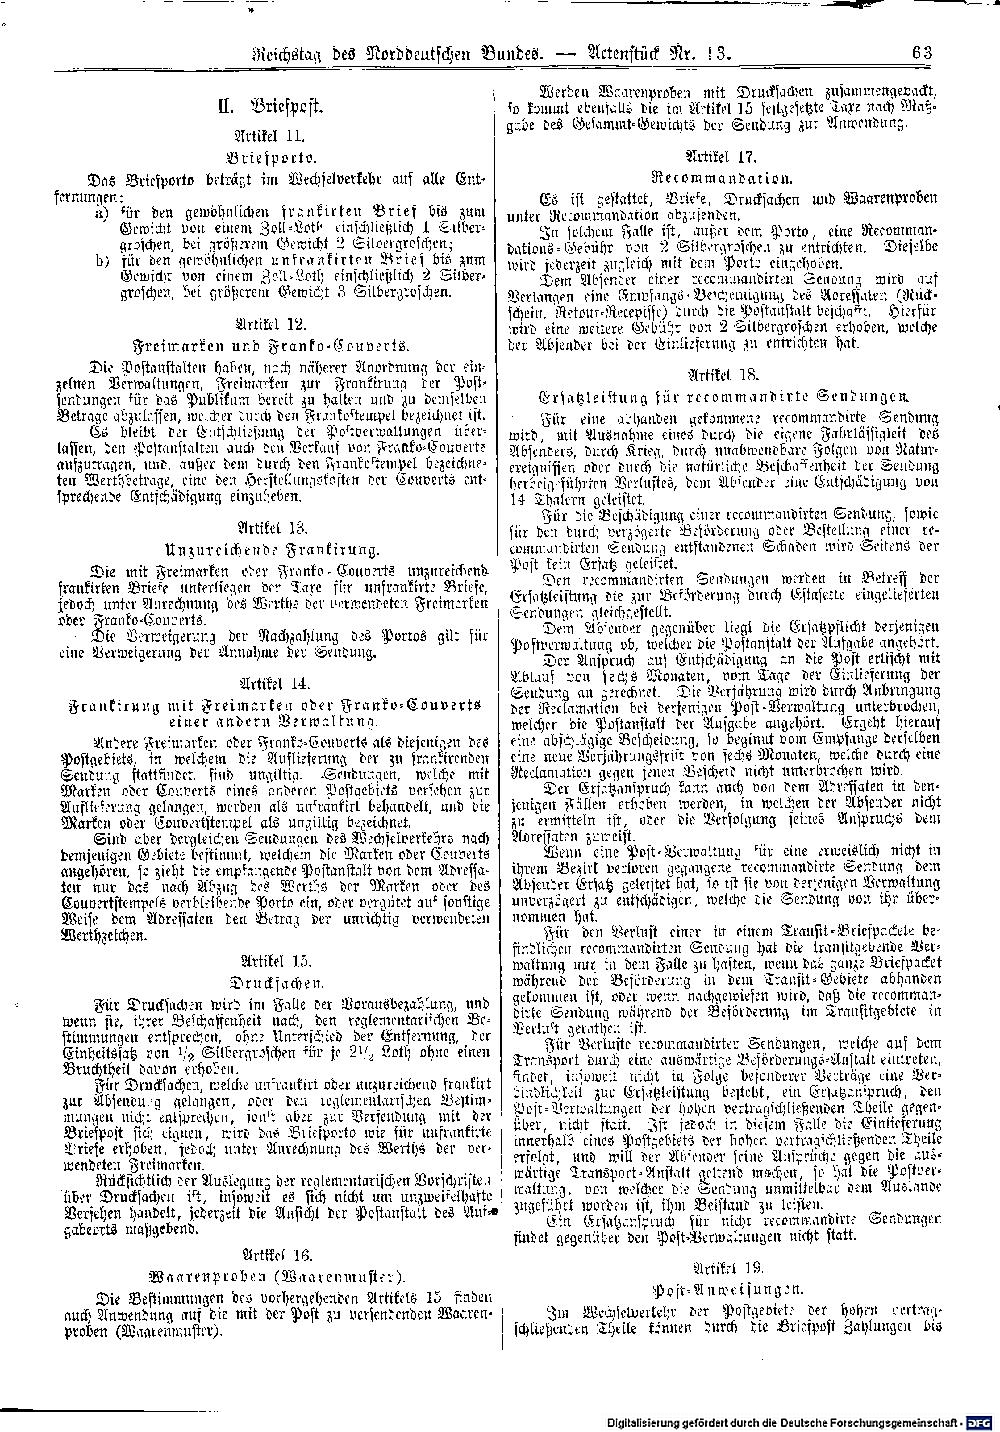 Scan of page 63